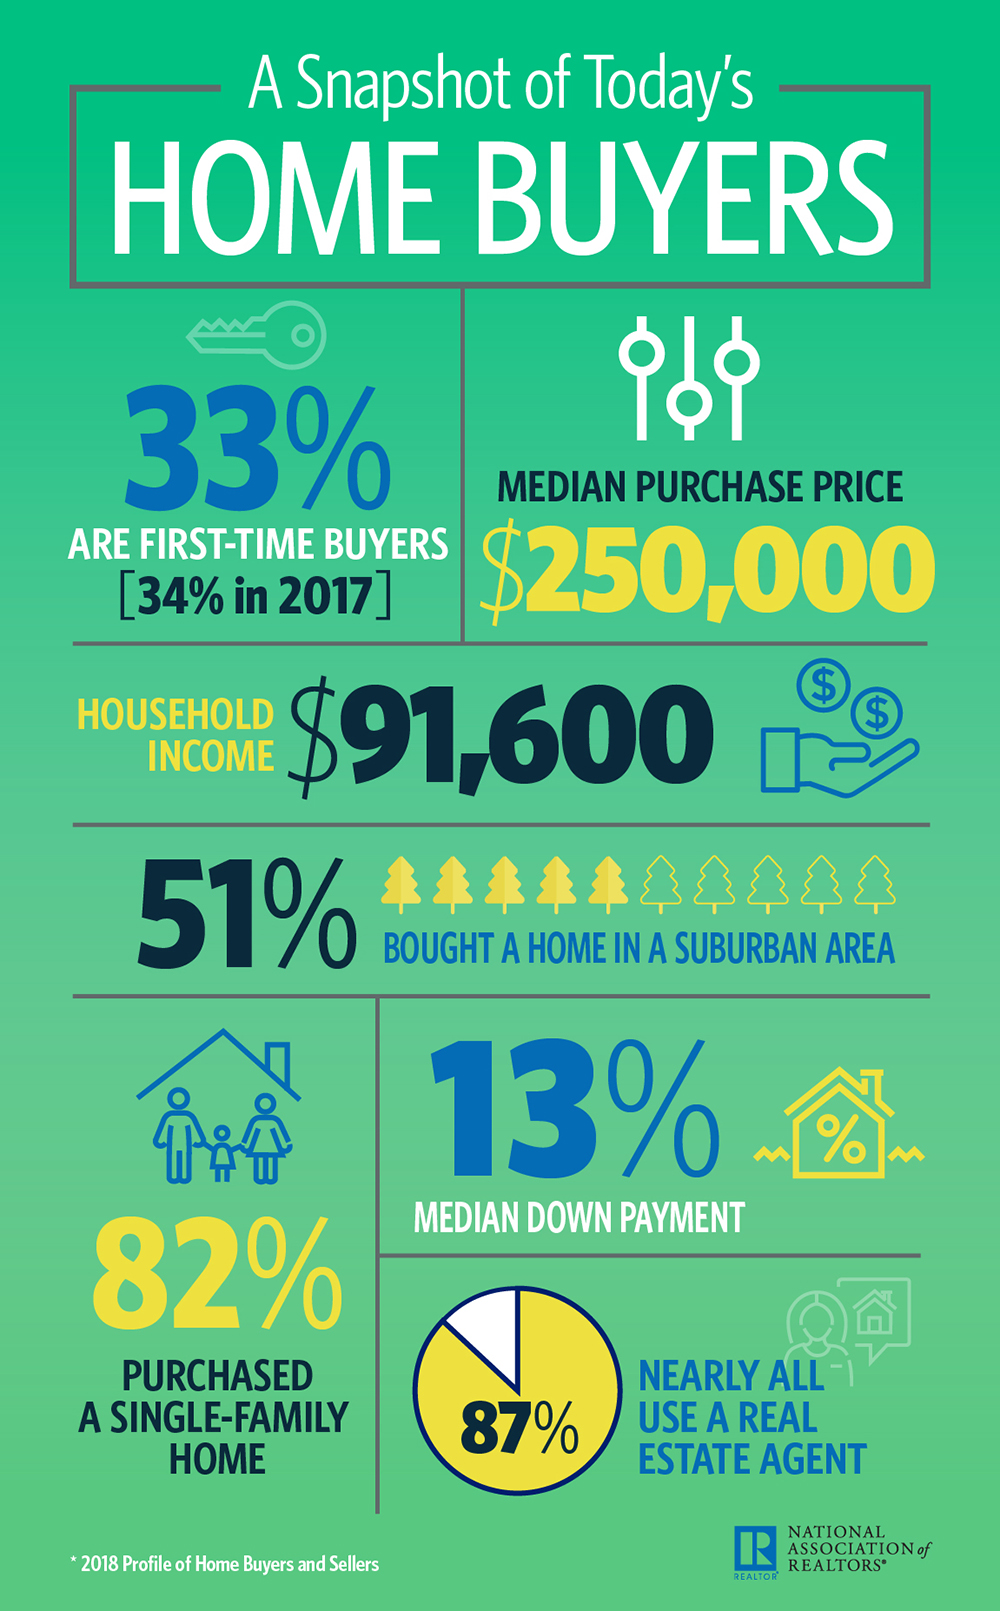 2018 home buyers infographic 10 29 2018 1000w 1611h